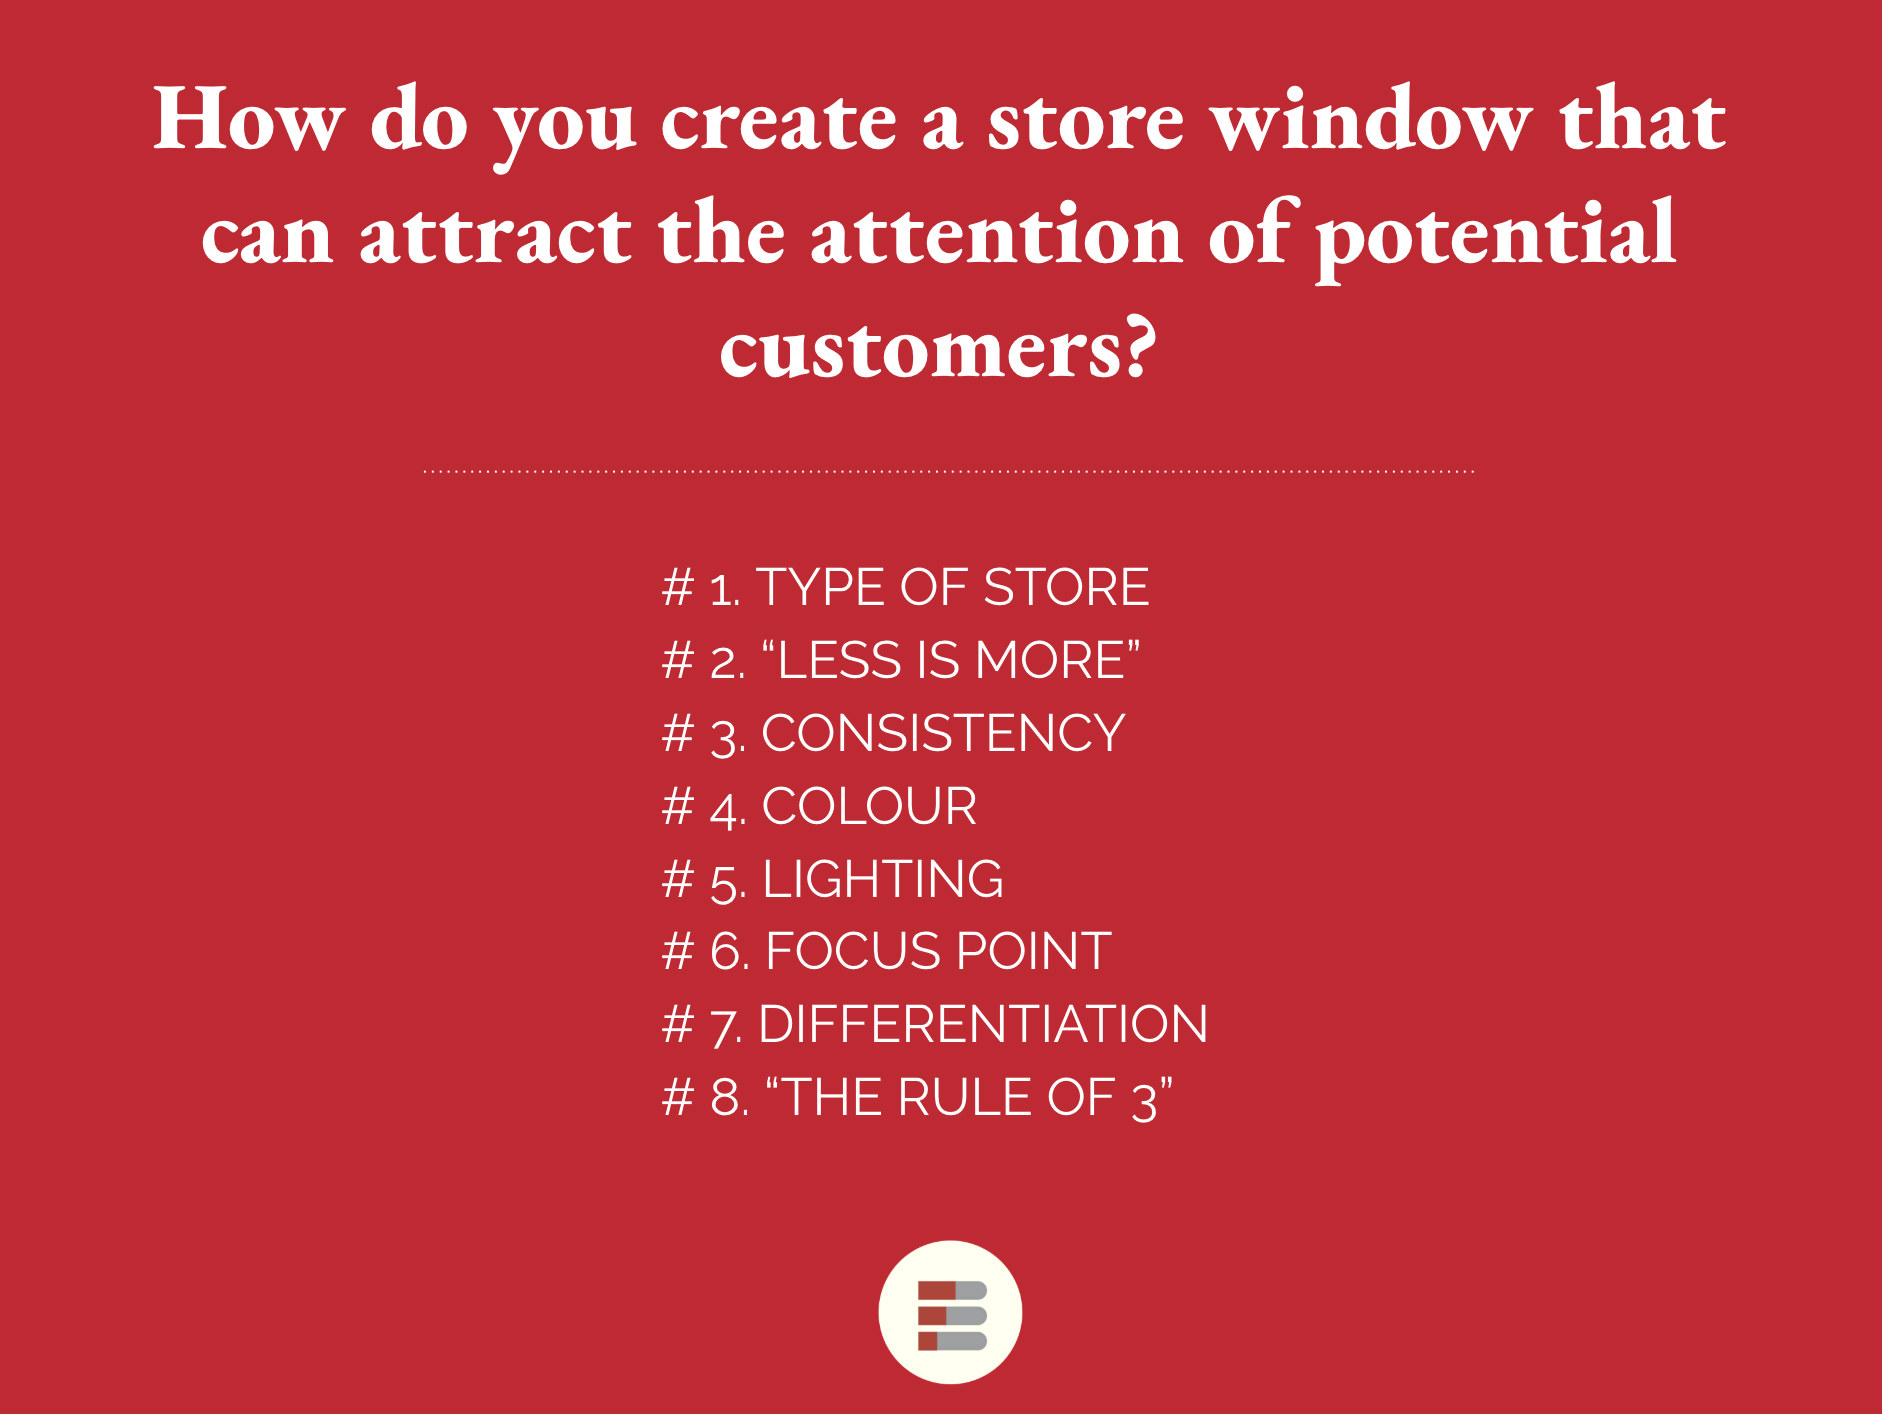 Customer-experience-in-retail-14